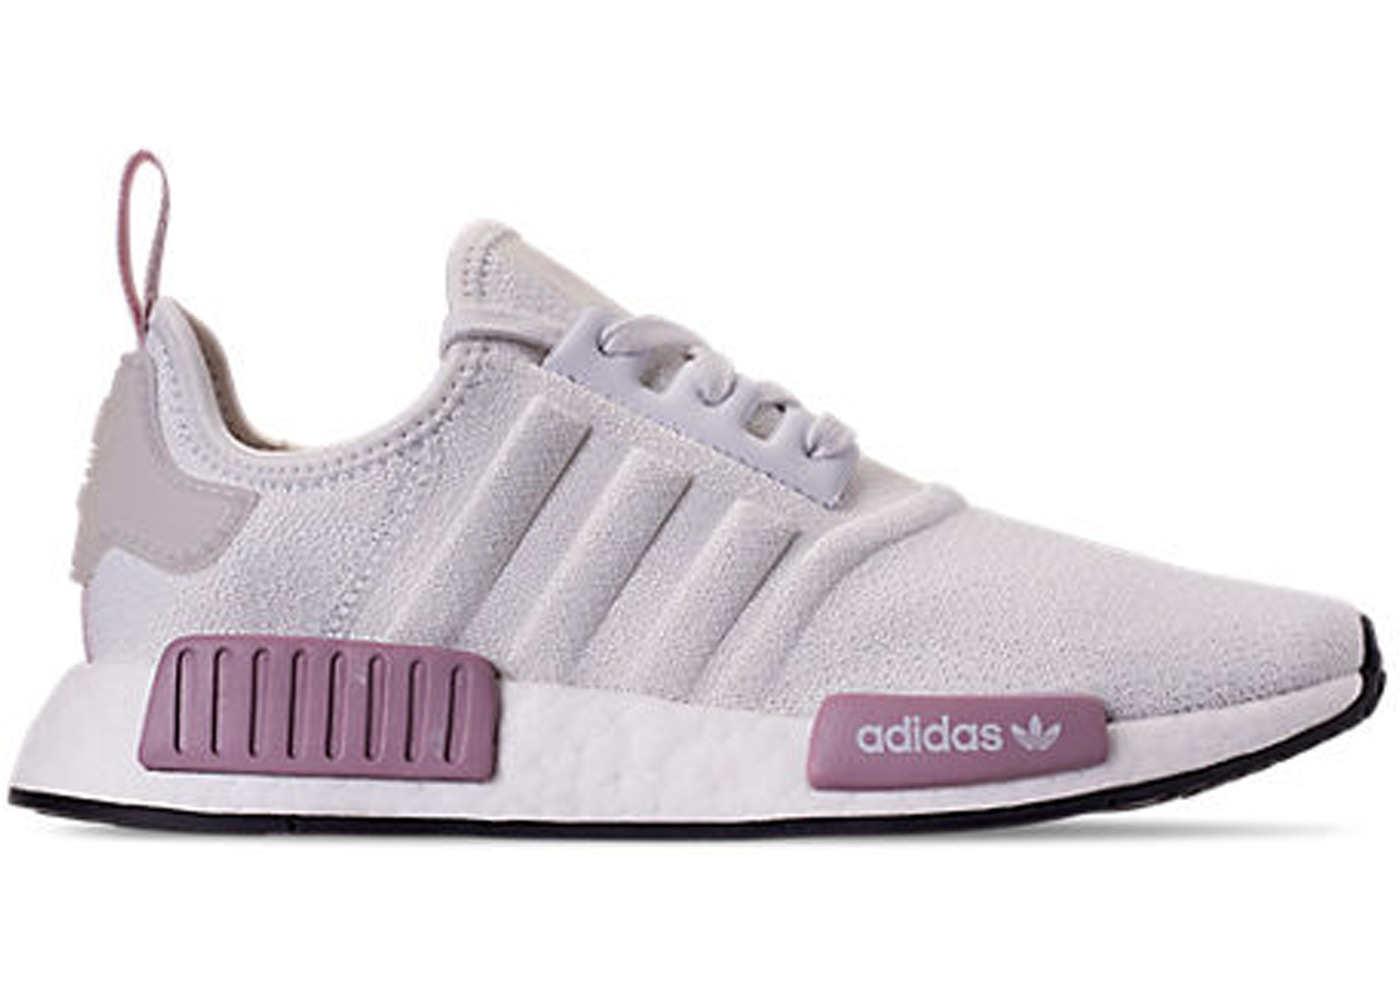 huge discount 8bc26 fe472 adidas NMD R1 Crystal White Orchid Tint (W)